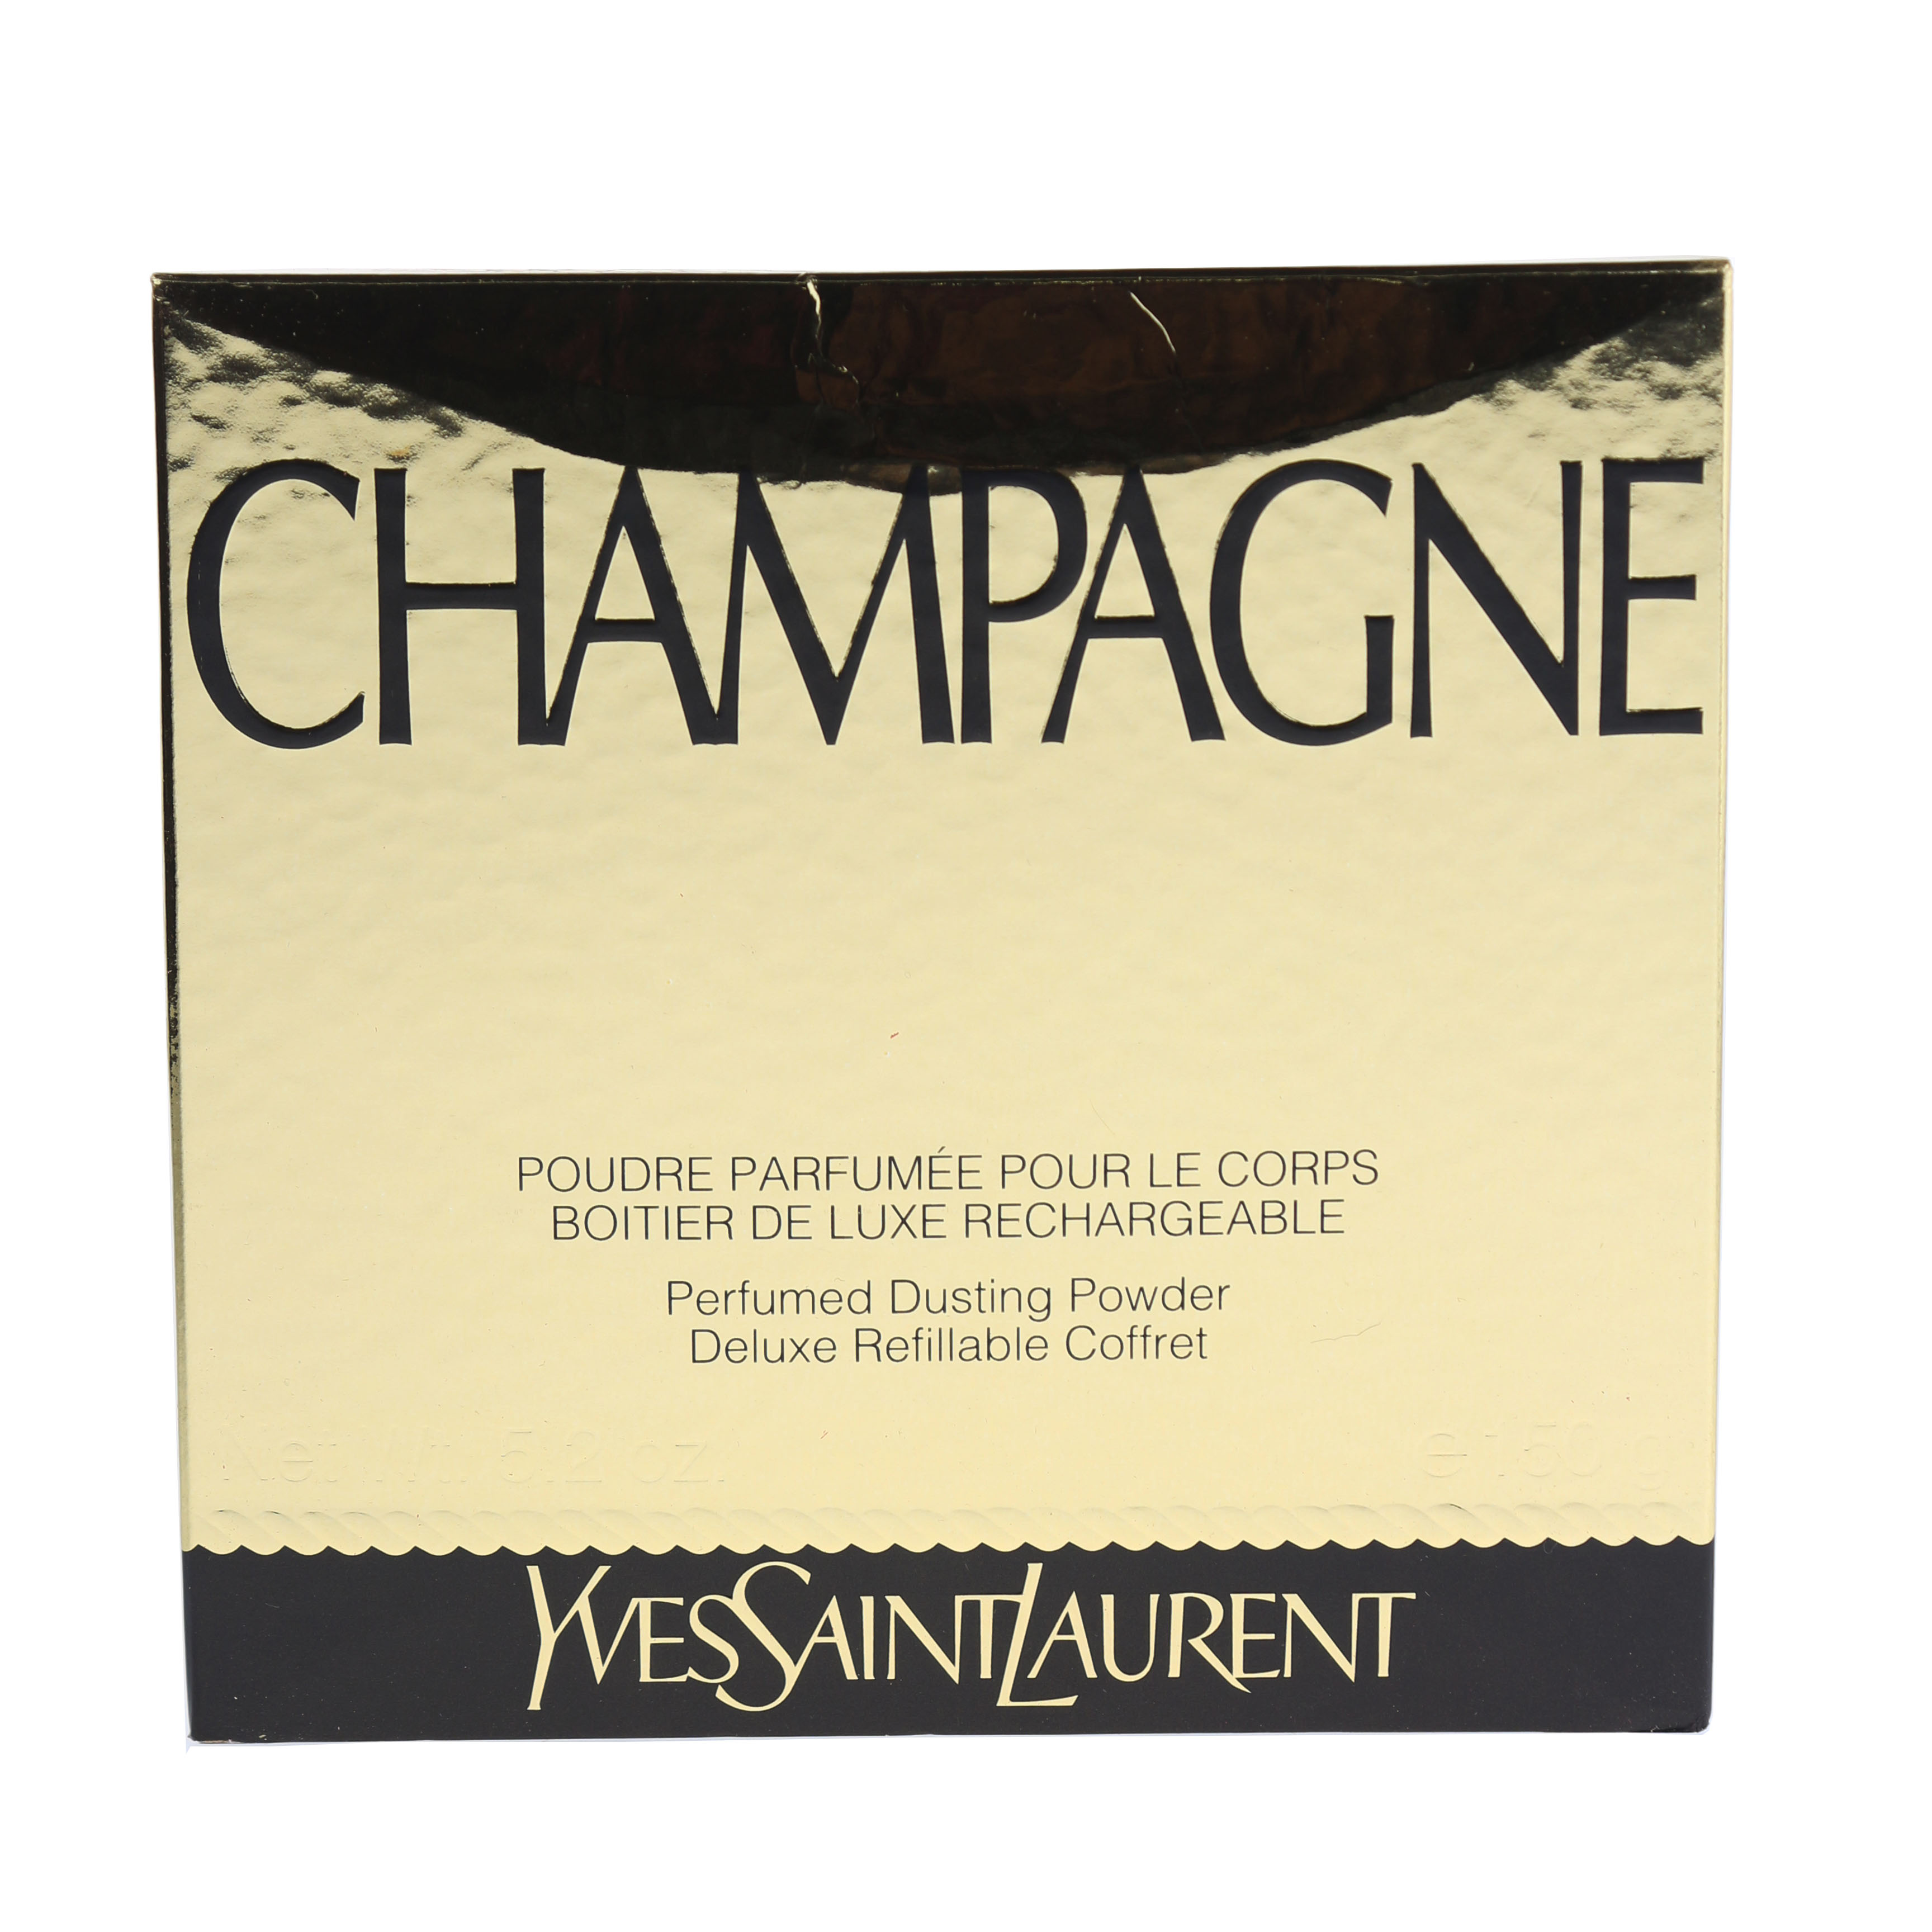 Image is loading Yves-Saint-Laurent-039-Champagne-039-Perfumed-Dusting- cae0c29bd7dd0